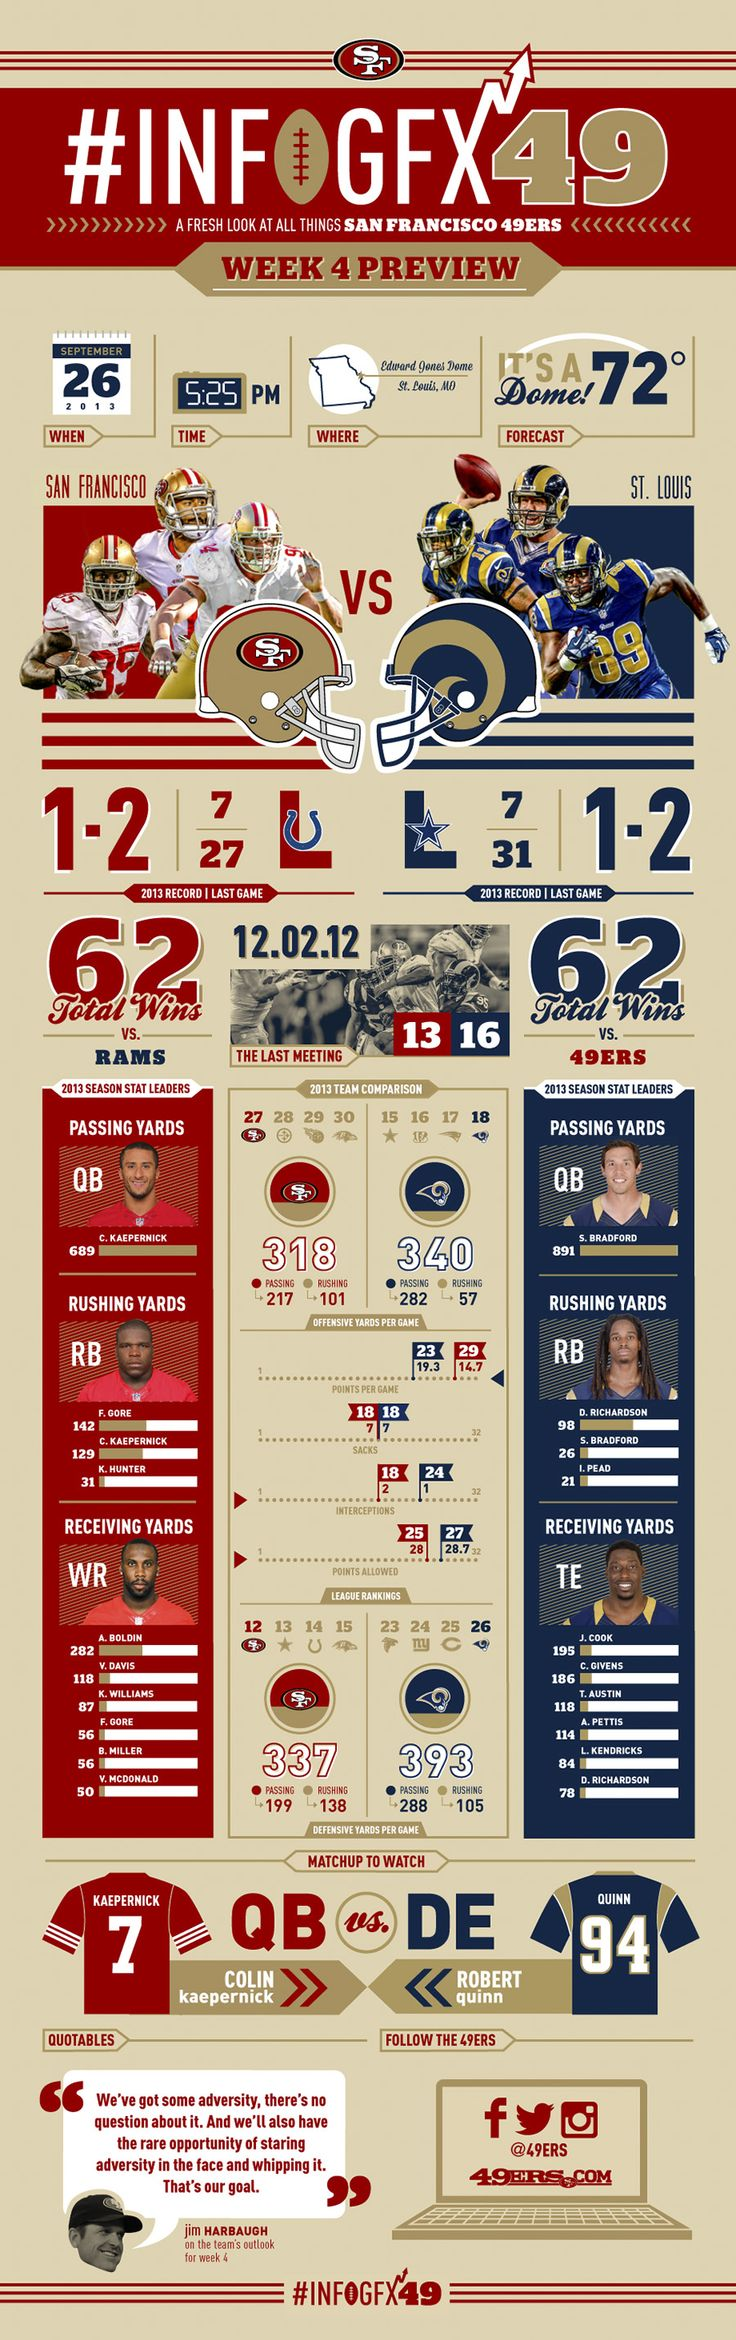 Infographic: 49ers vs. Rams Preview